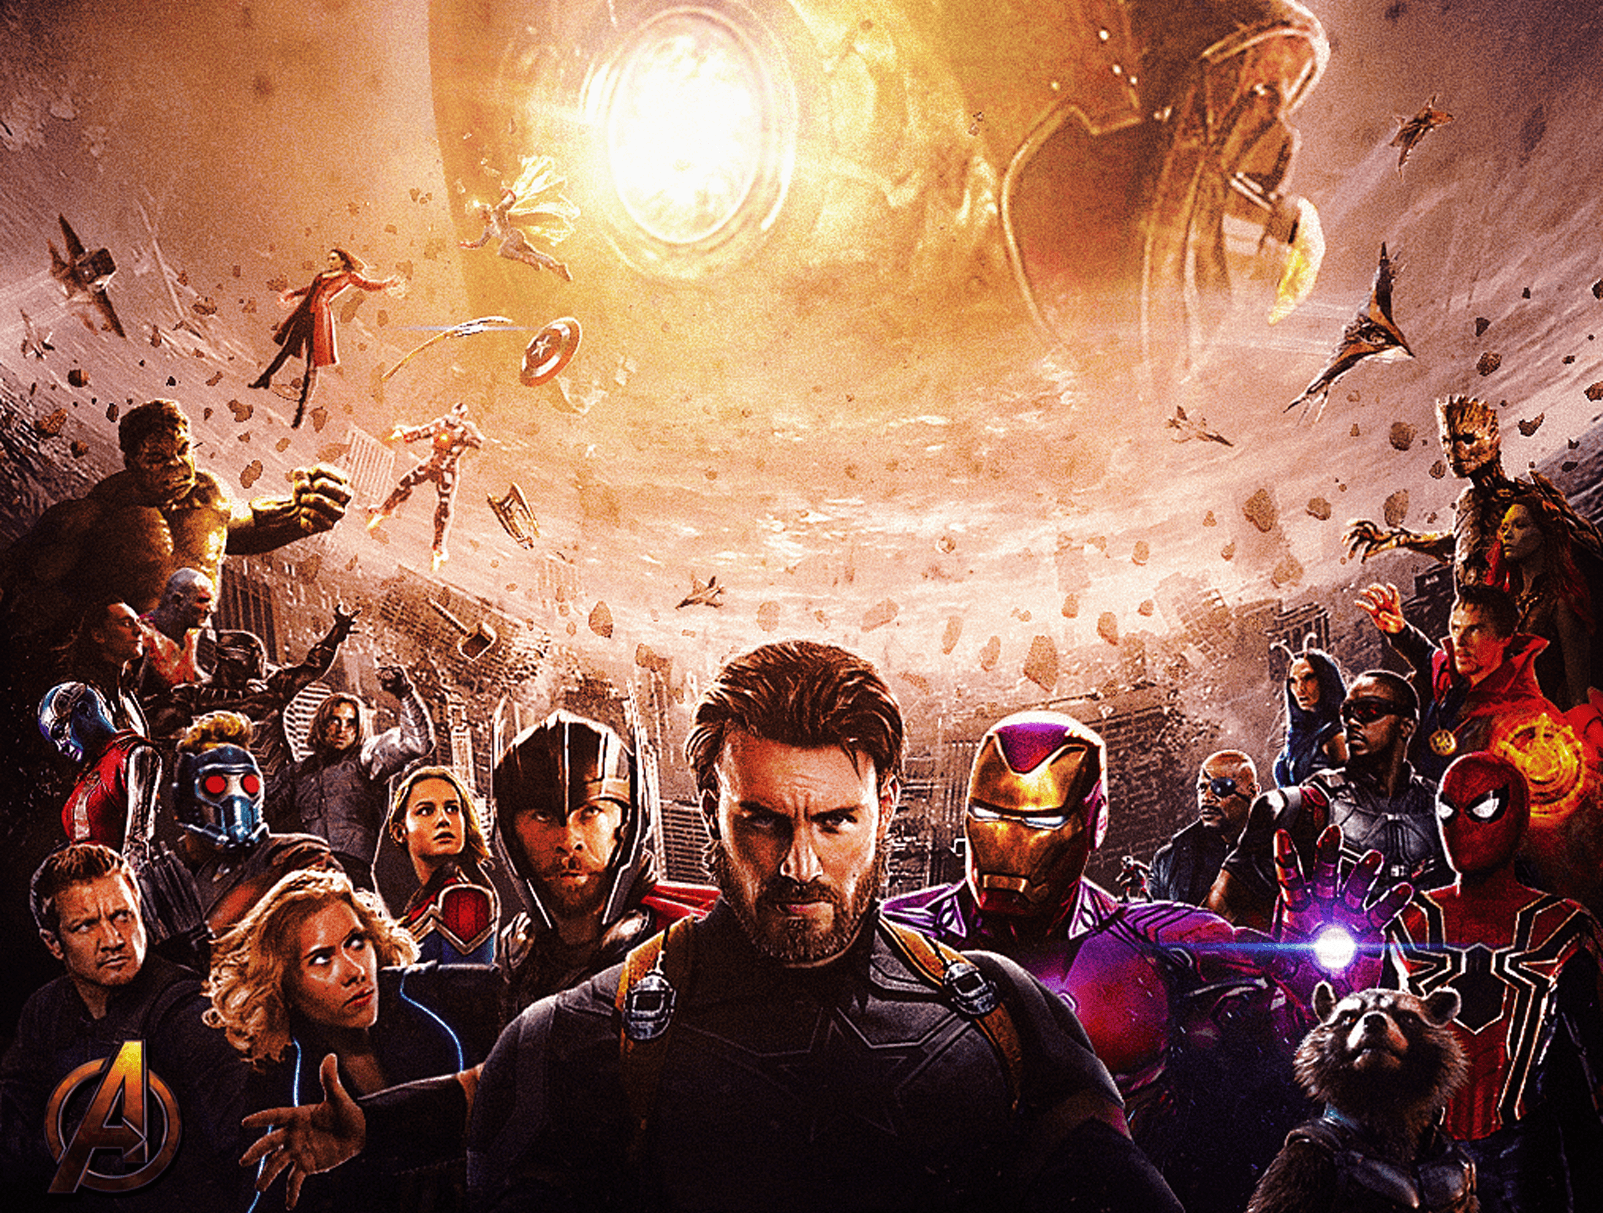 Avengers: Infinity War Wallpaper and Background | 1603x1213 | ID ...